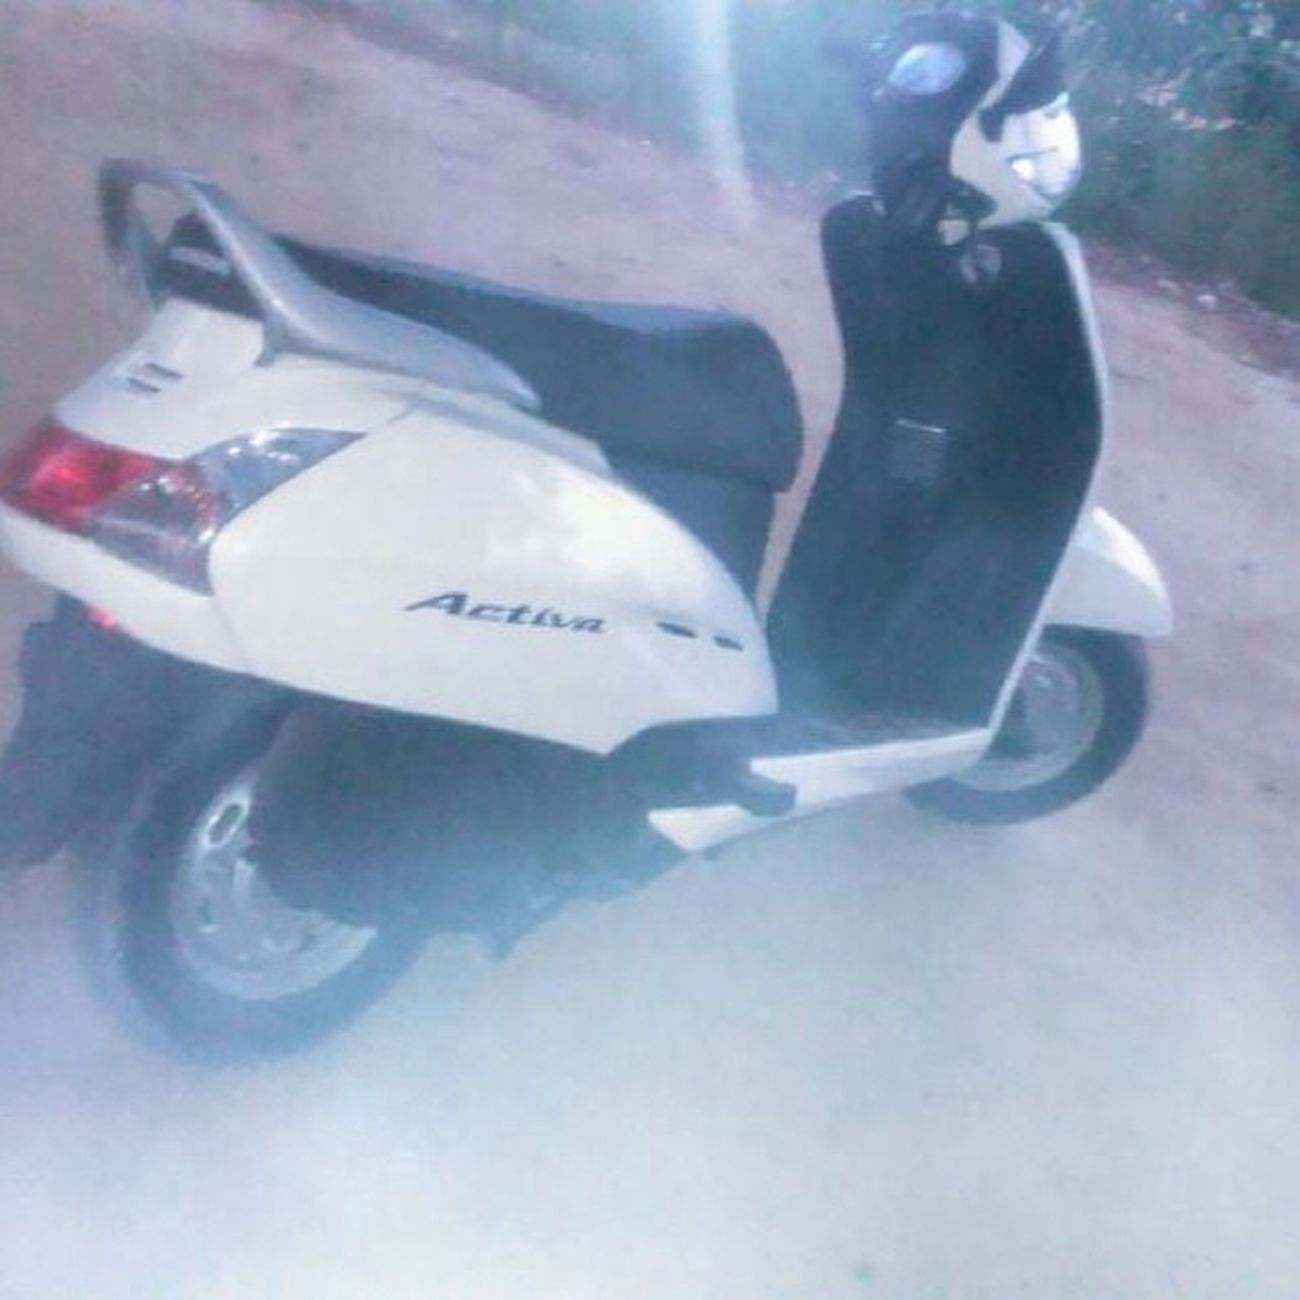 Yippyyy today i buy new activa honda ???